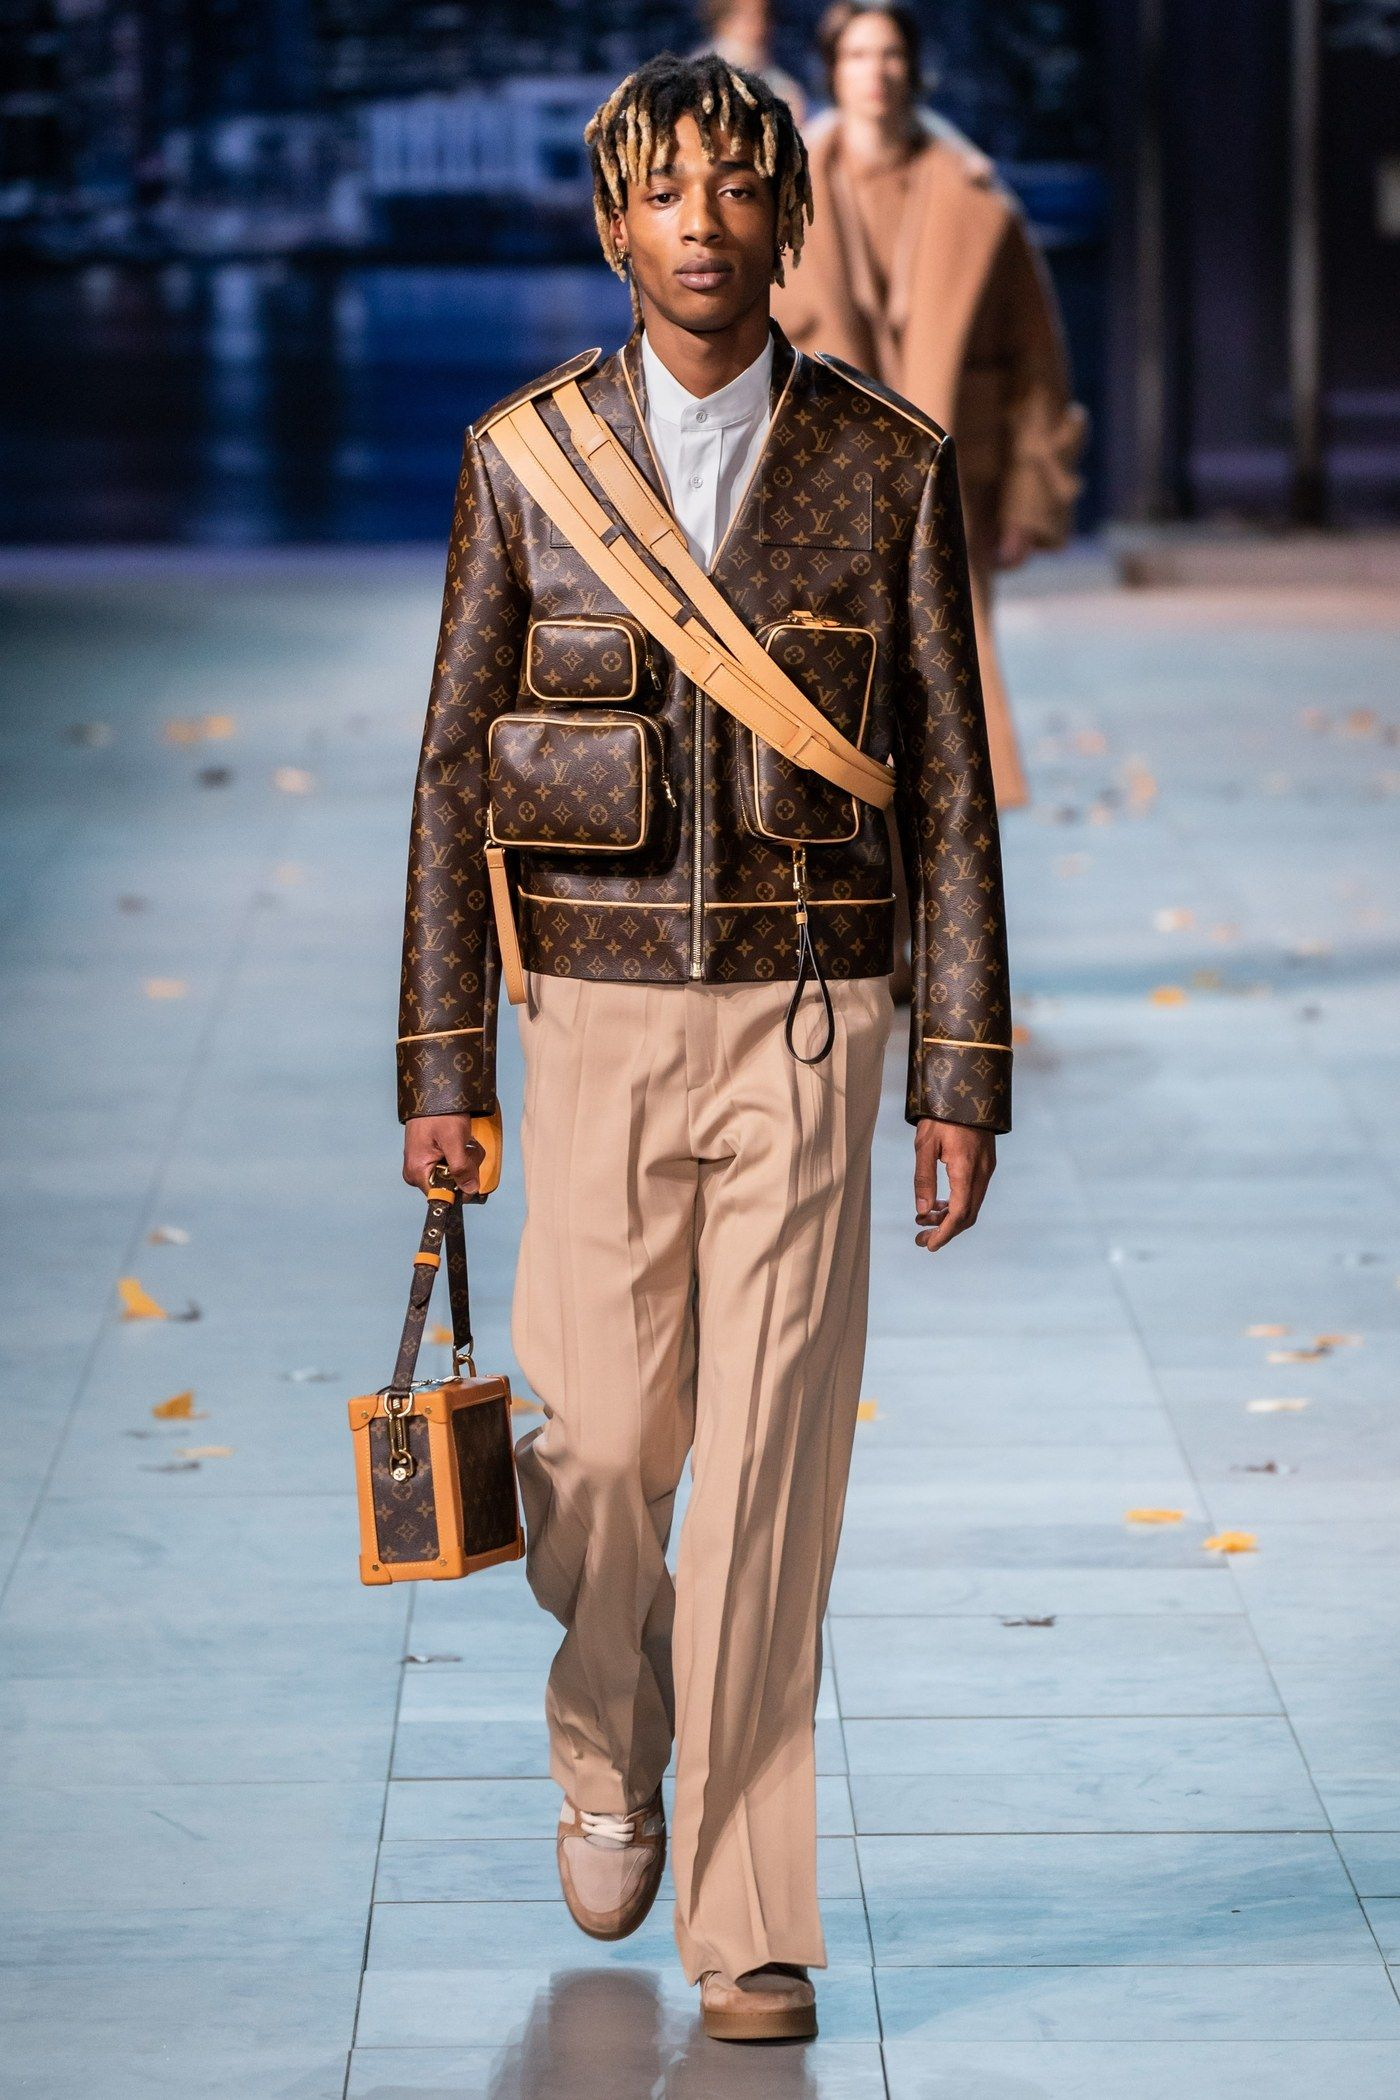 The Fall 2019 Mens Trend Report